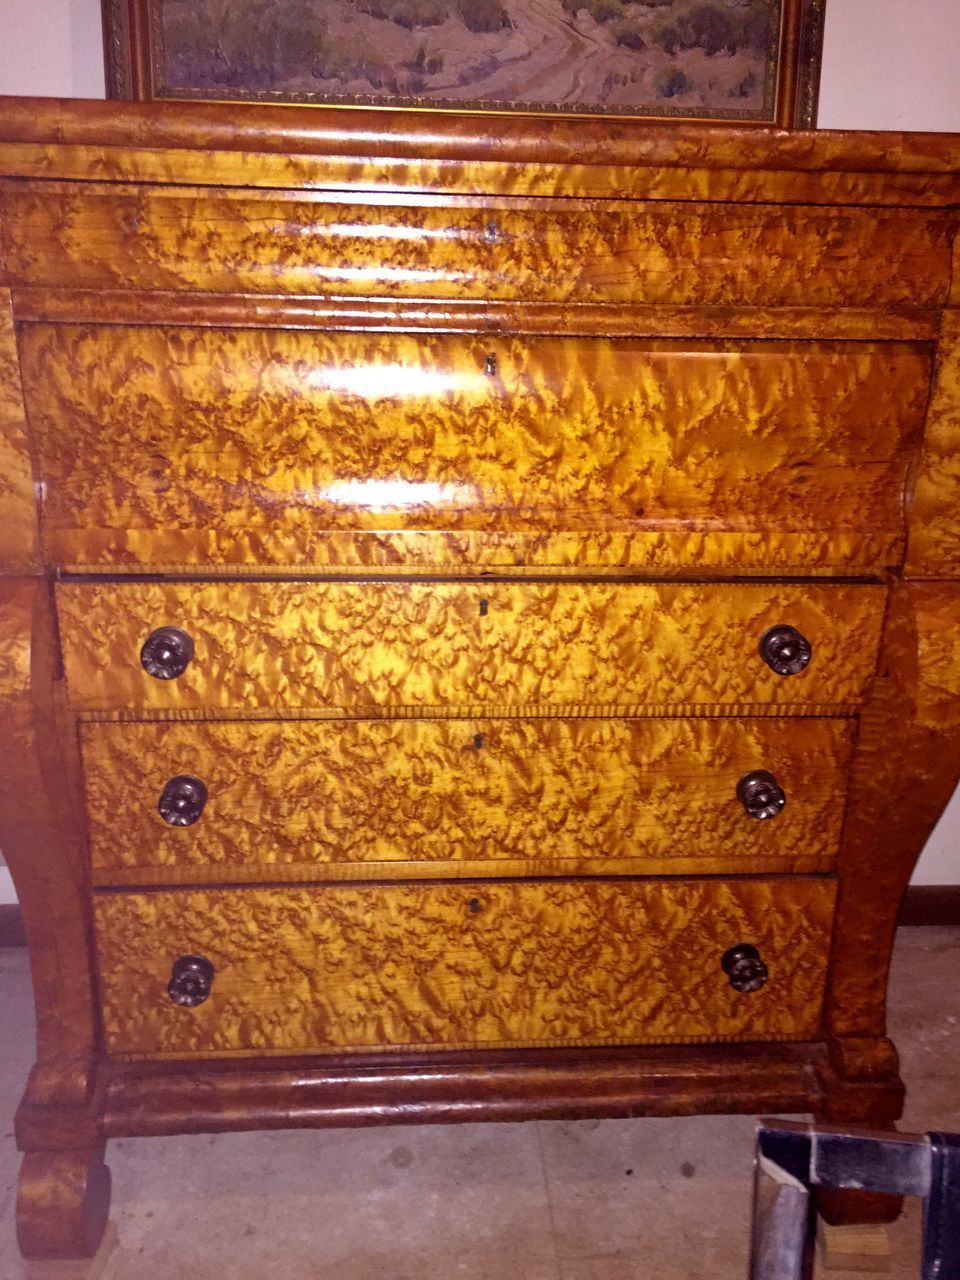 Magnificent Antique Rare Empire Birdseye Maple Bachelor's Chest from… - SALE! Magnificent Antique Rare Empire Birdseye Maple Bachelor's